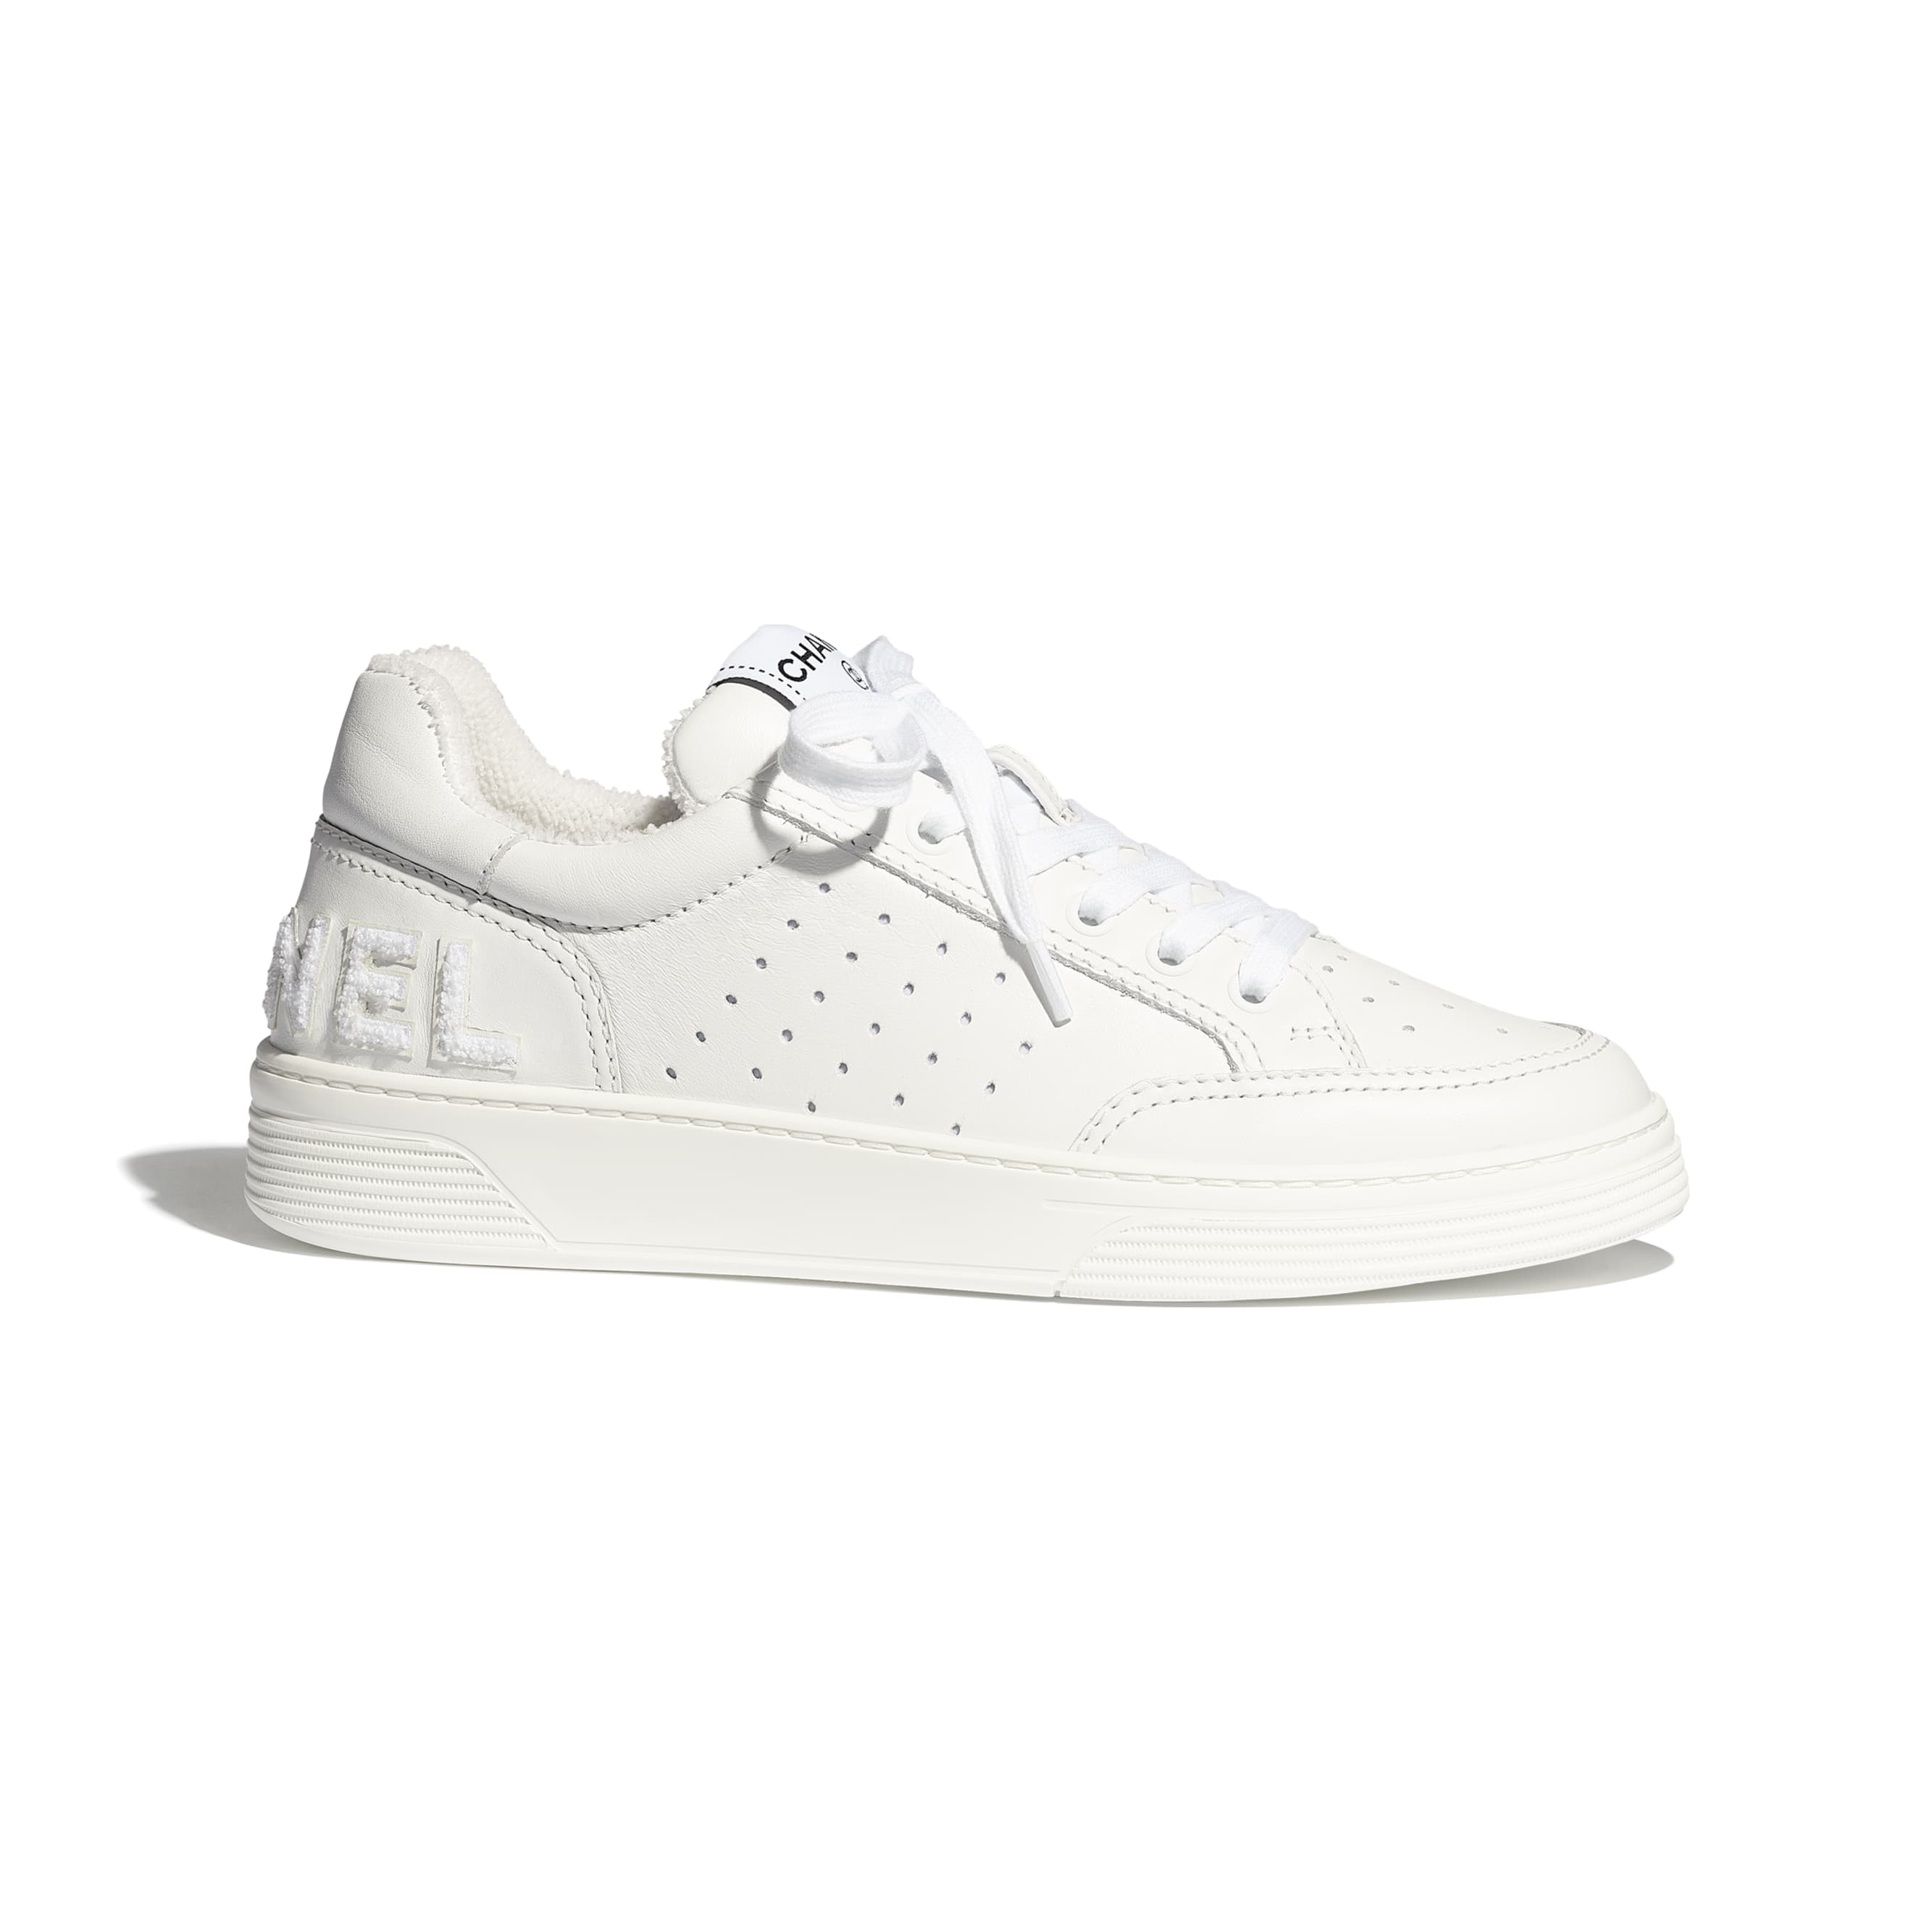 Trainers - White - Calfskin - Default view - see standard sized version